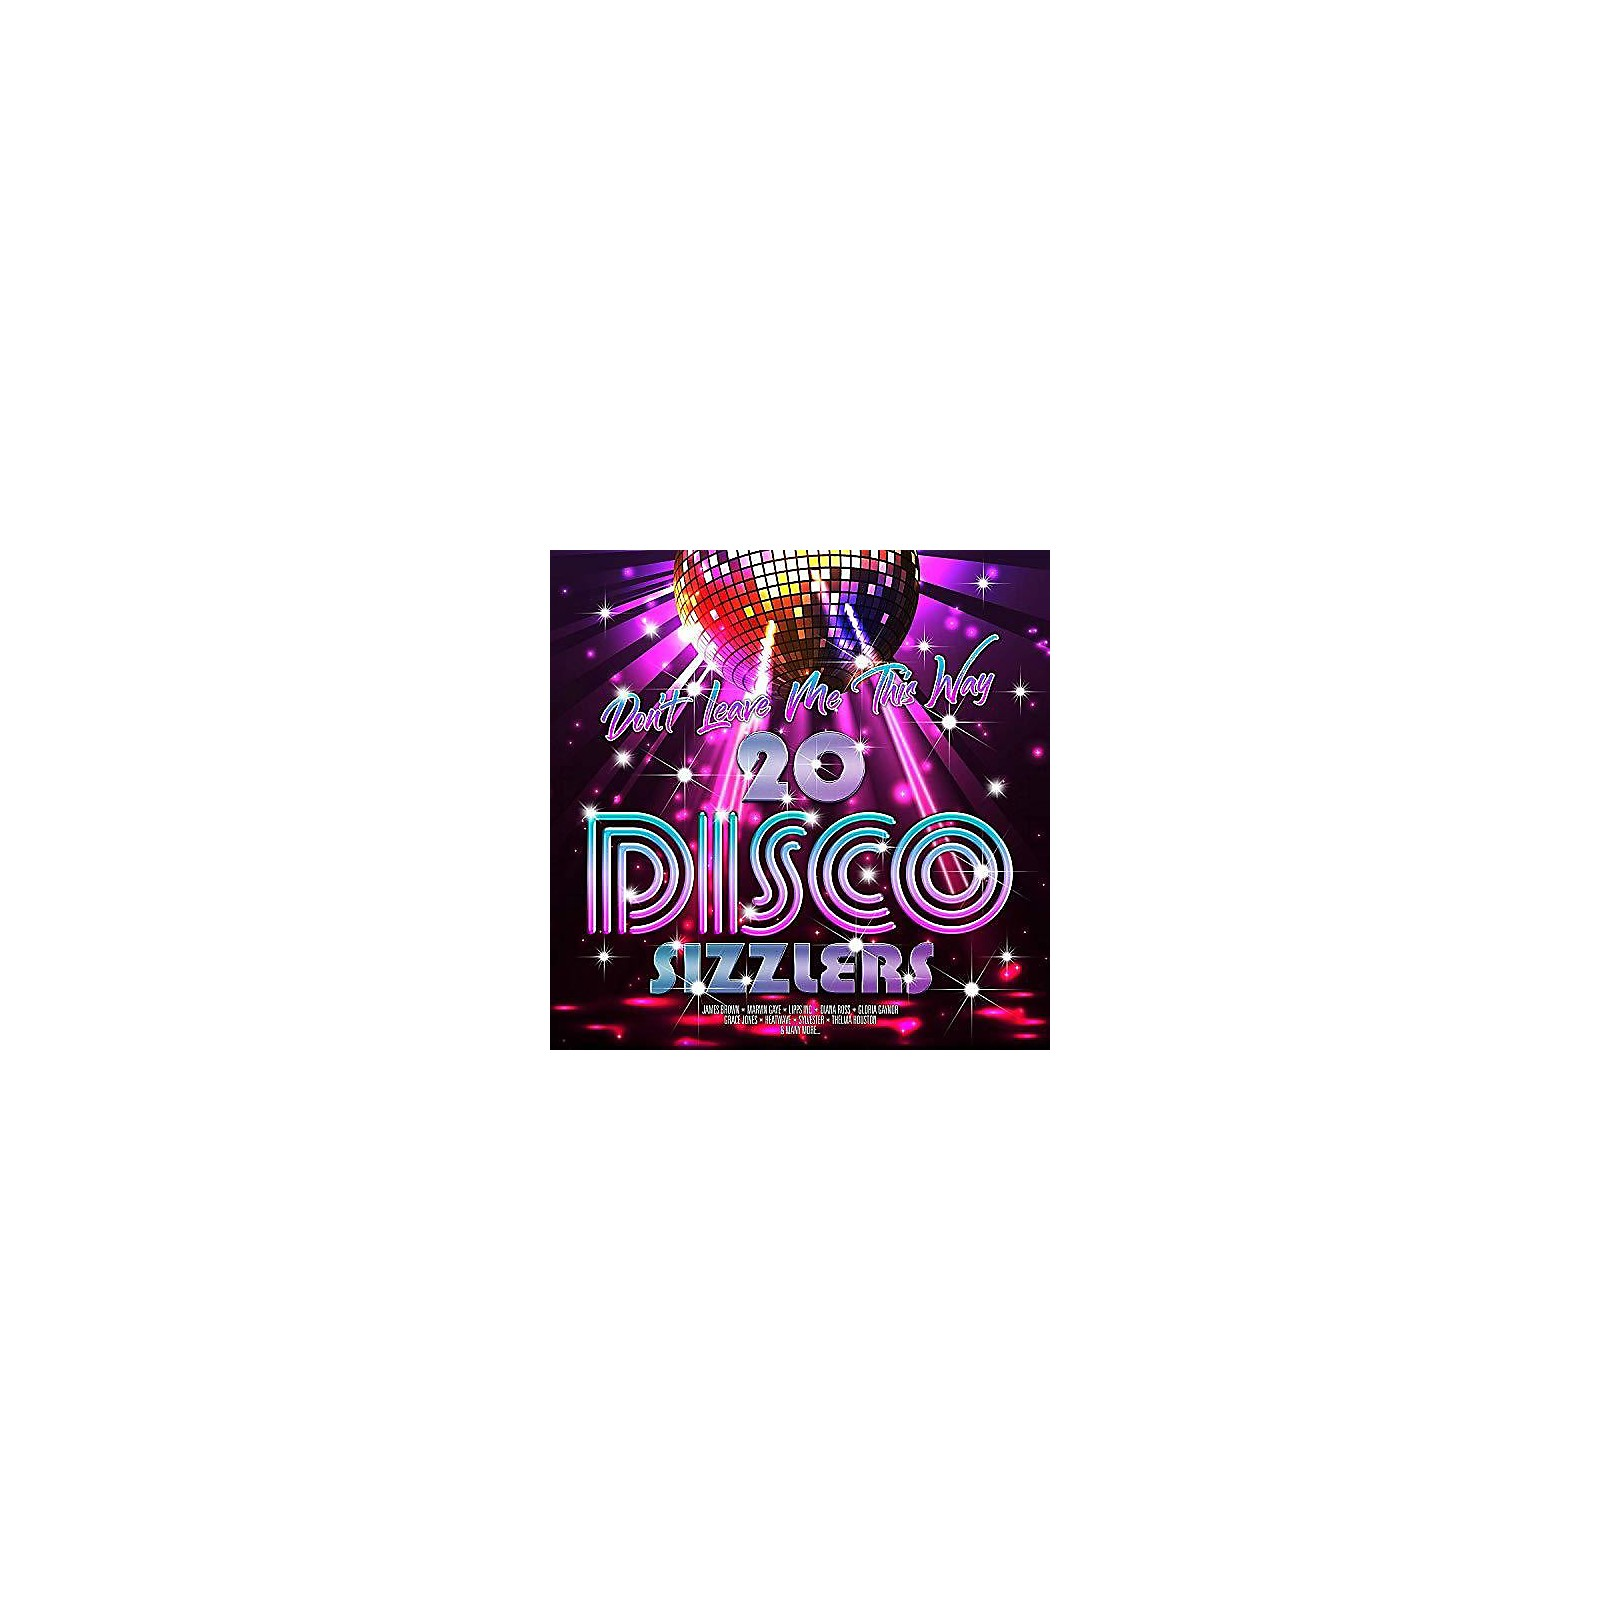 Alliance Various Artists - Don't Leave Me This Way: 20 Disco Sizzlers / Various